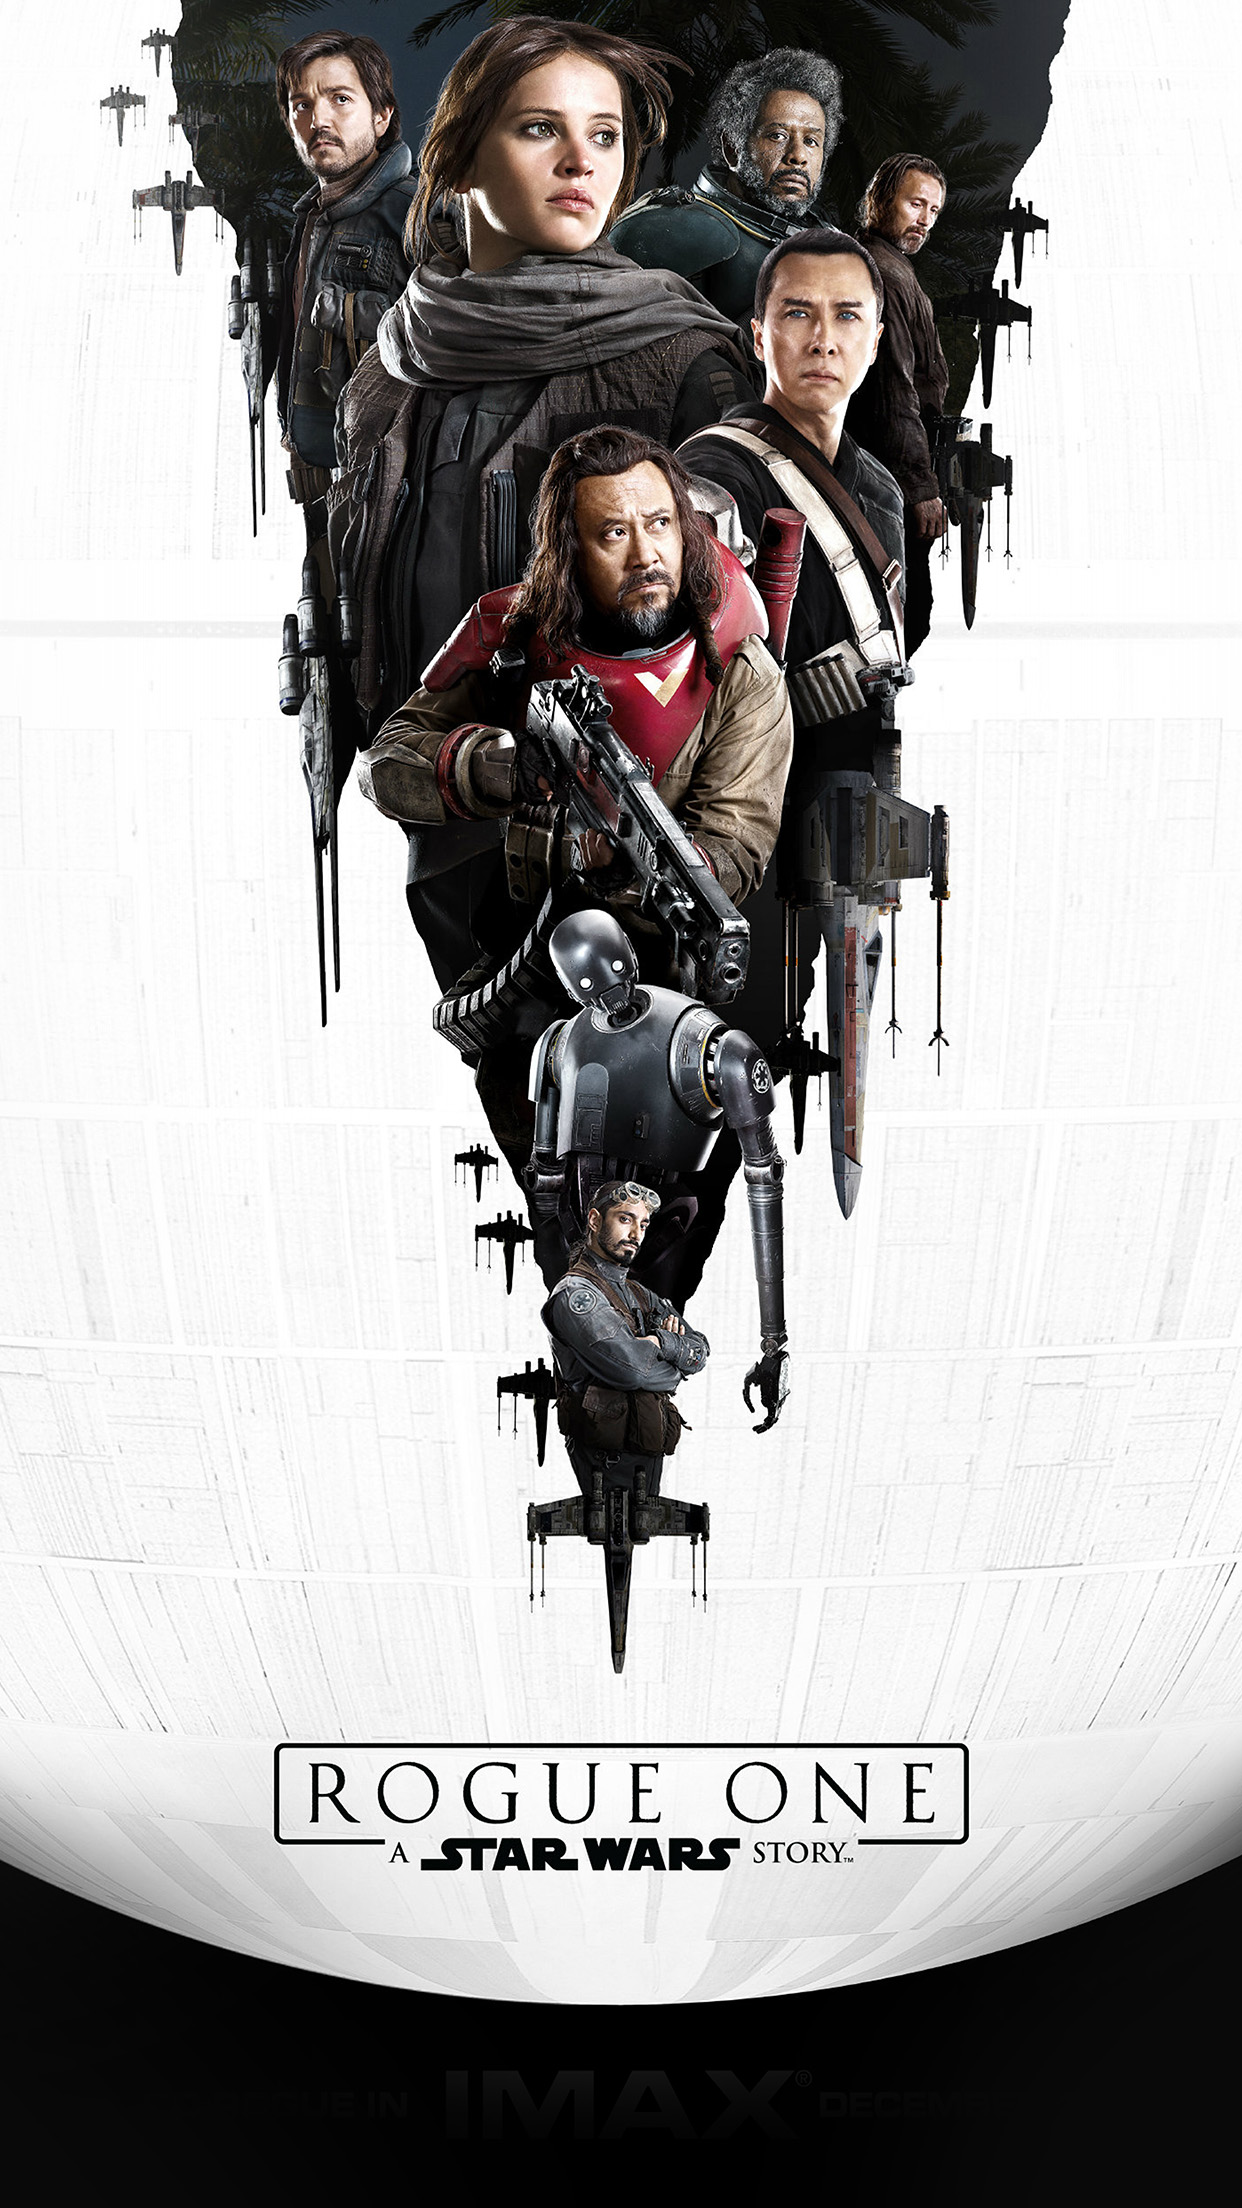 i love papers | aw01-film-rogue-one-starwars-poster-illustration-art